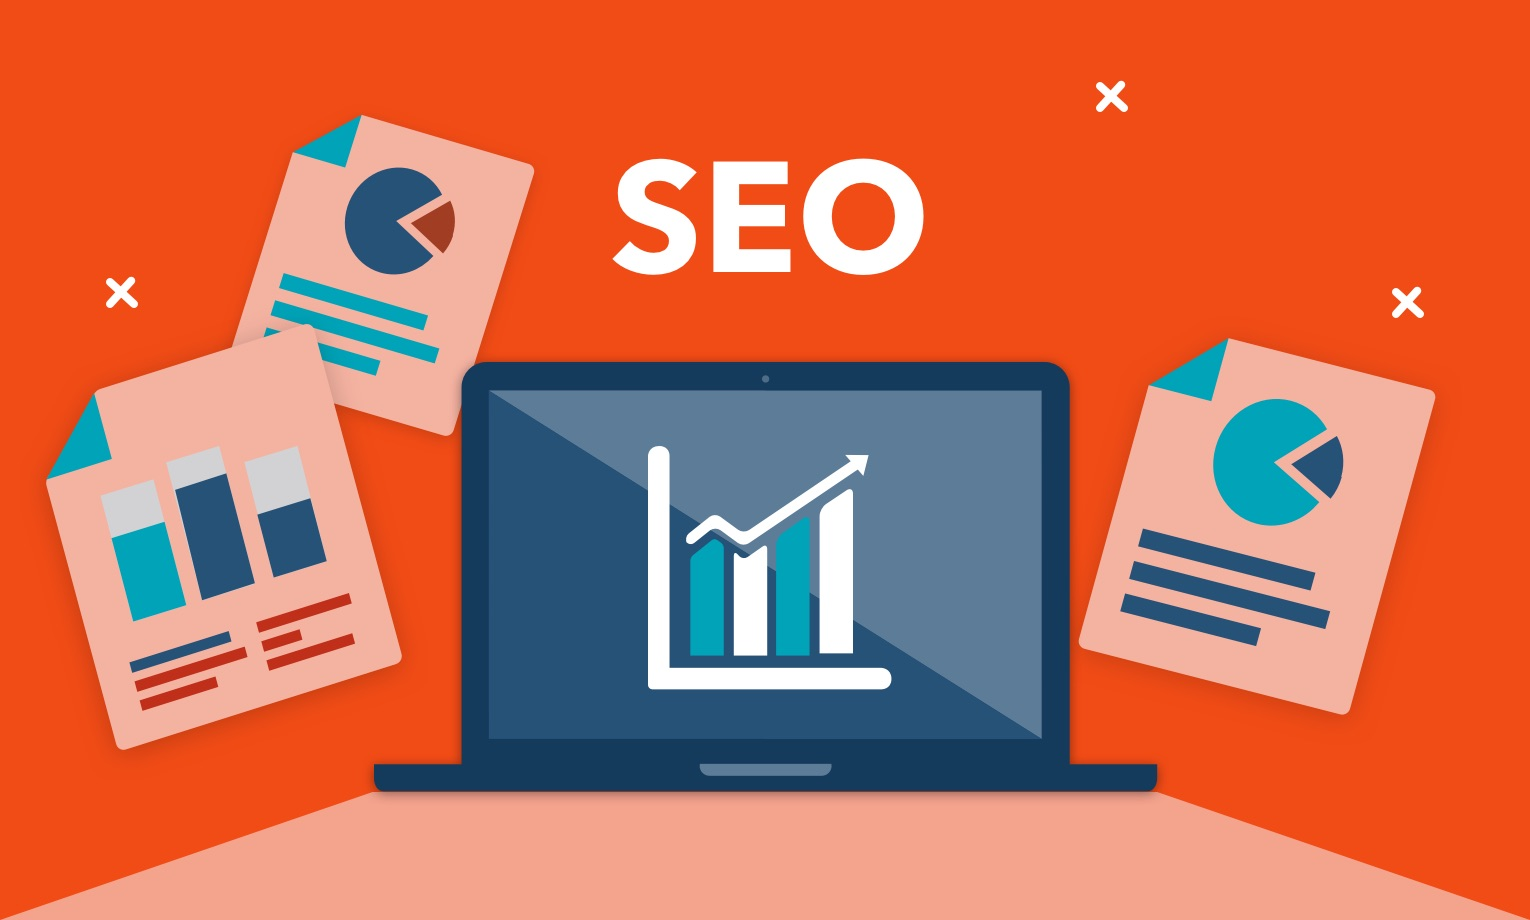 Search Engine Optimisation (SEO) : A Possible Way To Increase Website Traffic